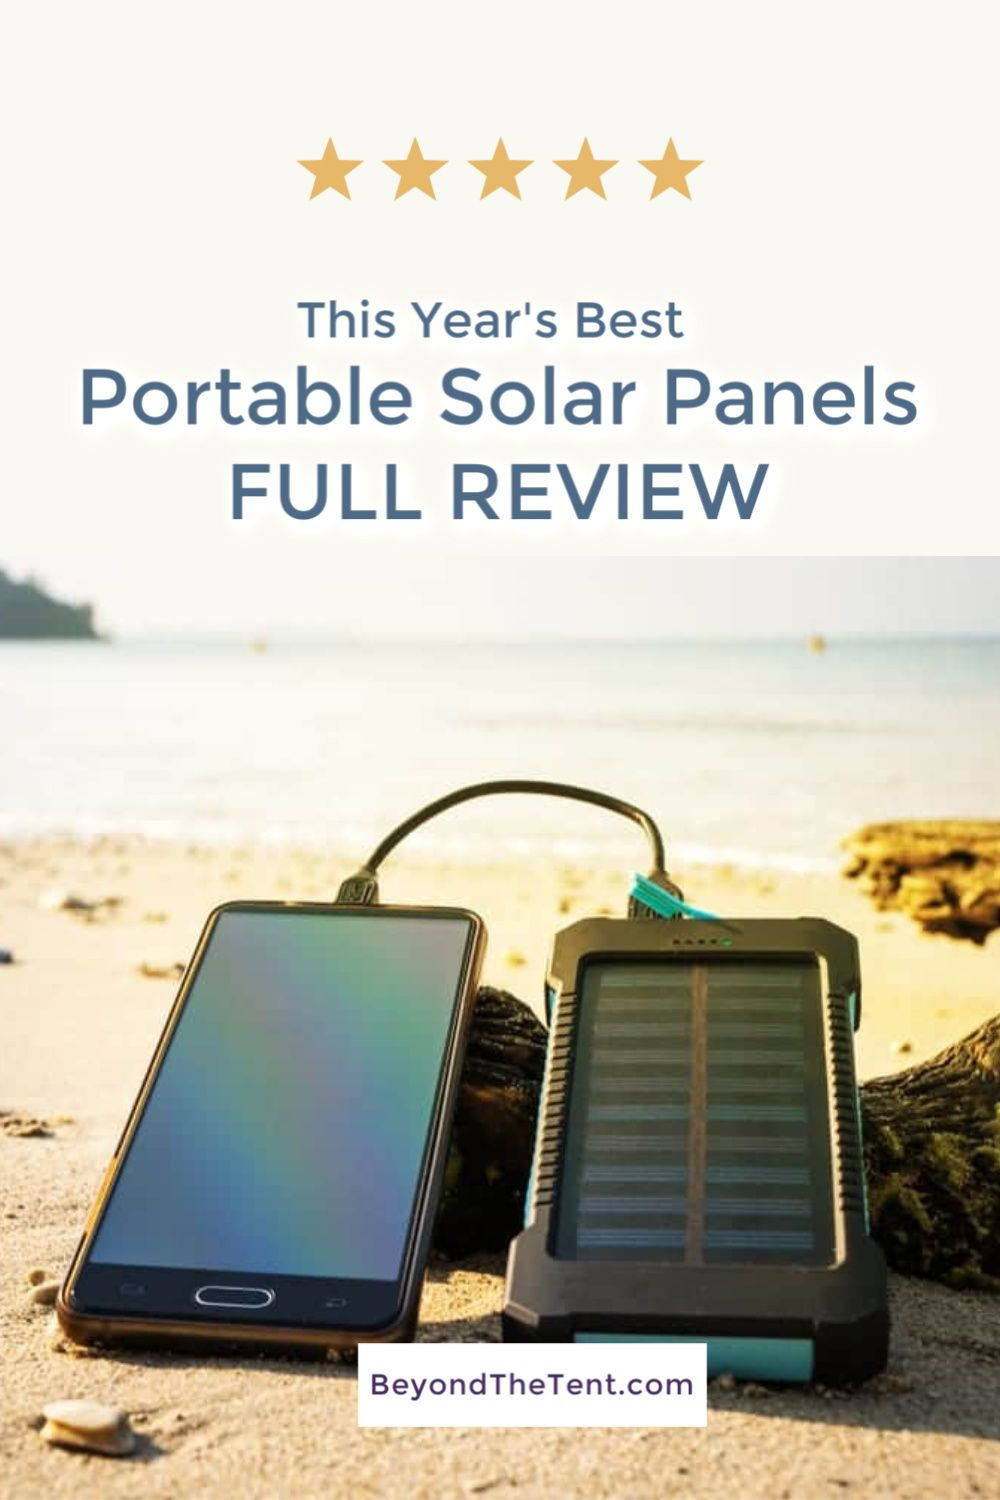 Best Portable Solar Panels For Camping In 2020 In 2020 Portable Solar Panels Solar Powered Backpack Solar Charger Portable